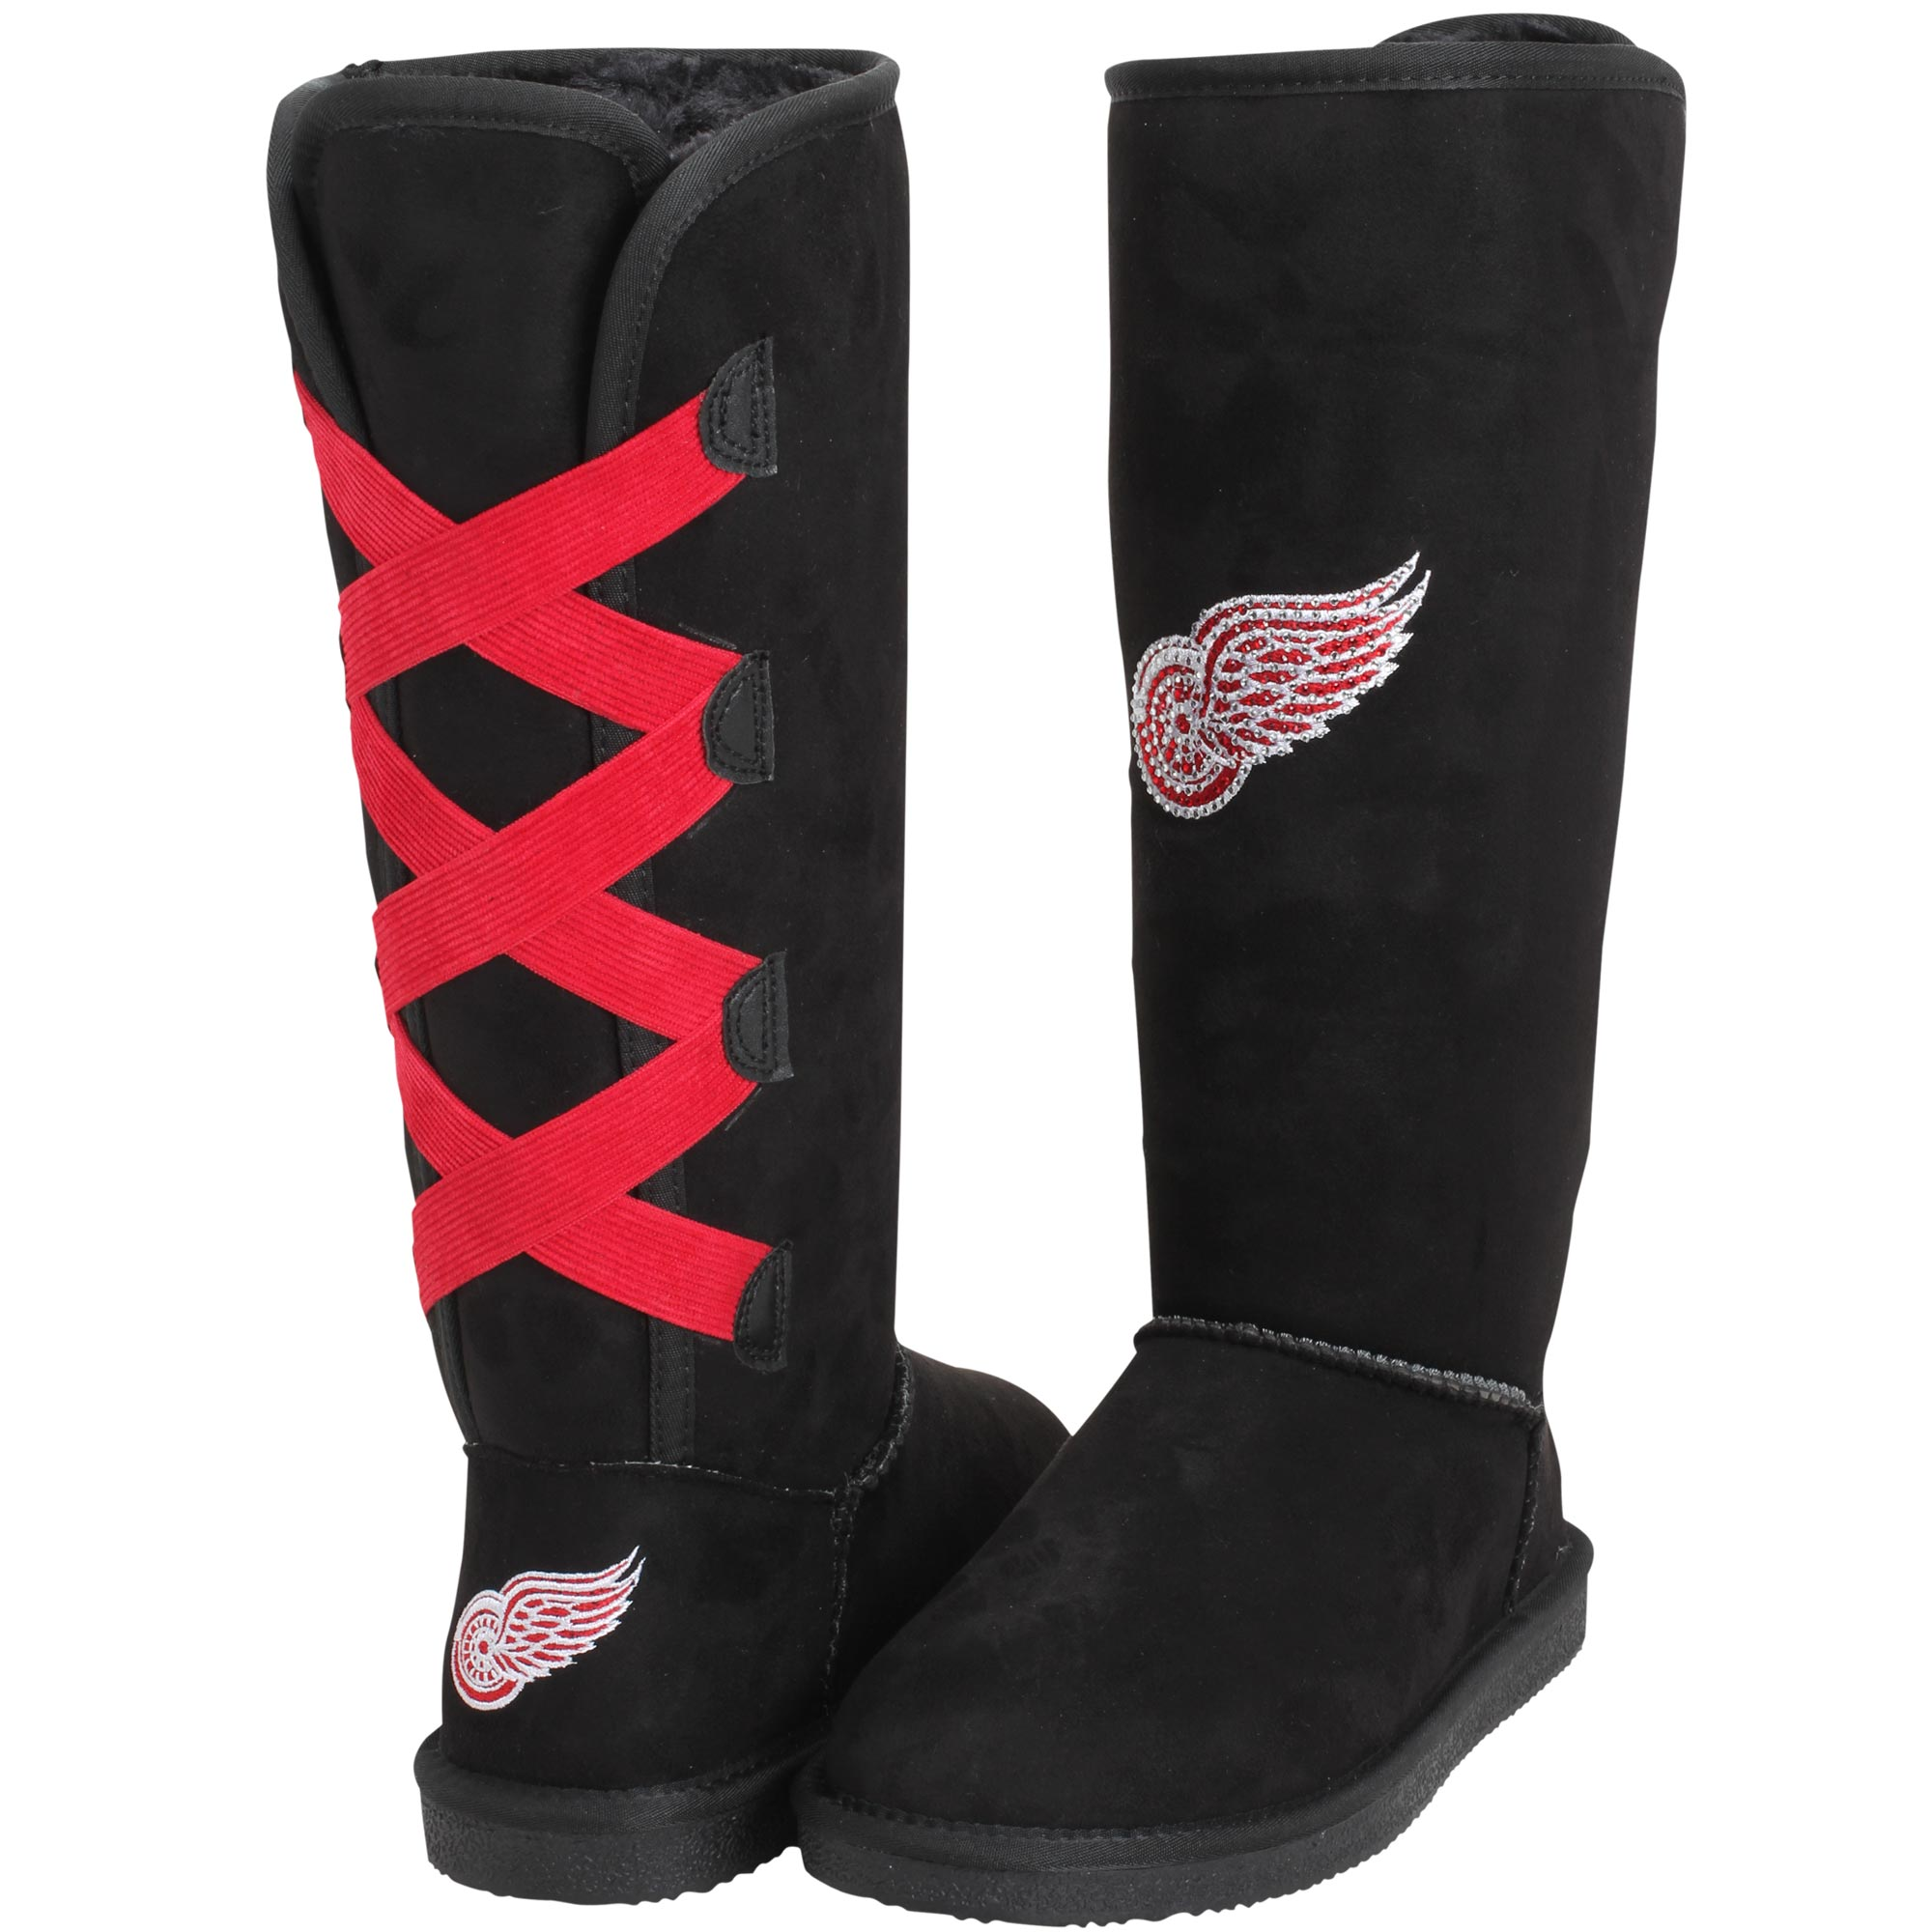 Women's Cuce Detroit Red Wings Victor Boots by Cuce Shoes